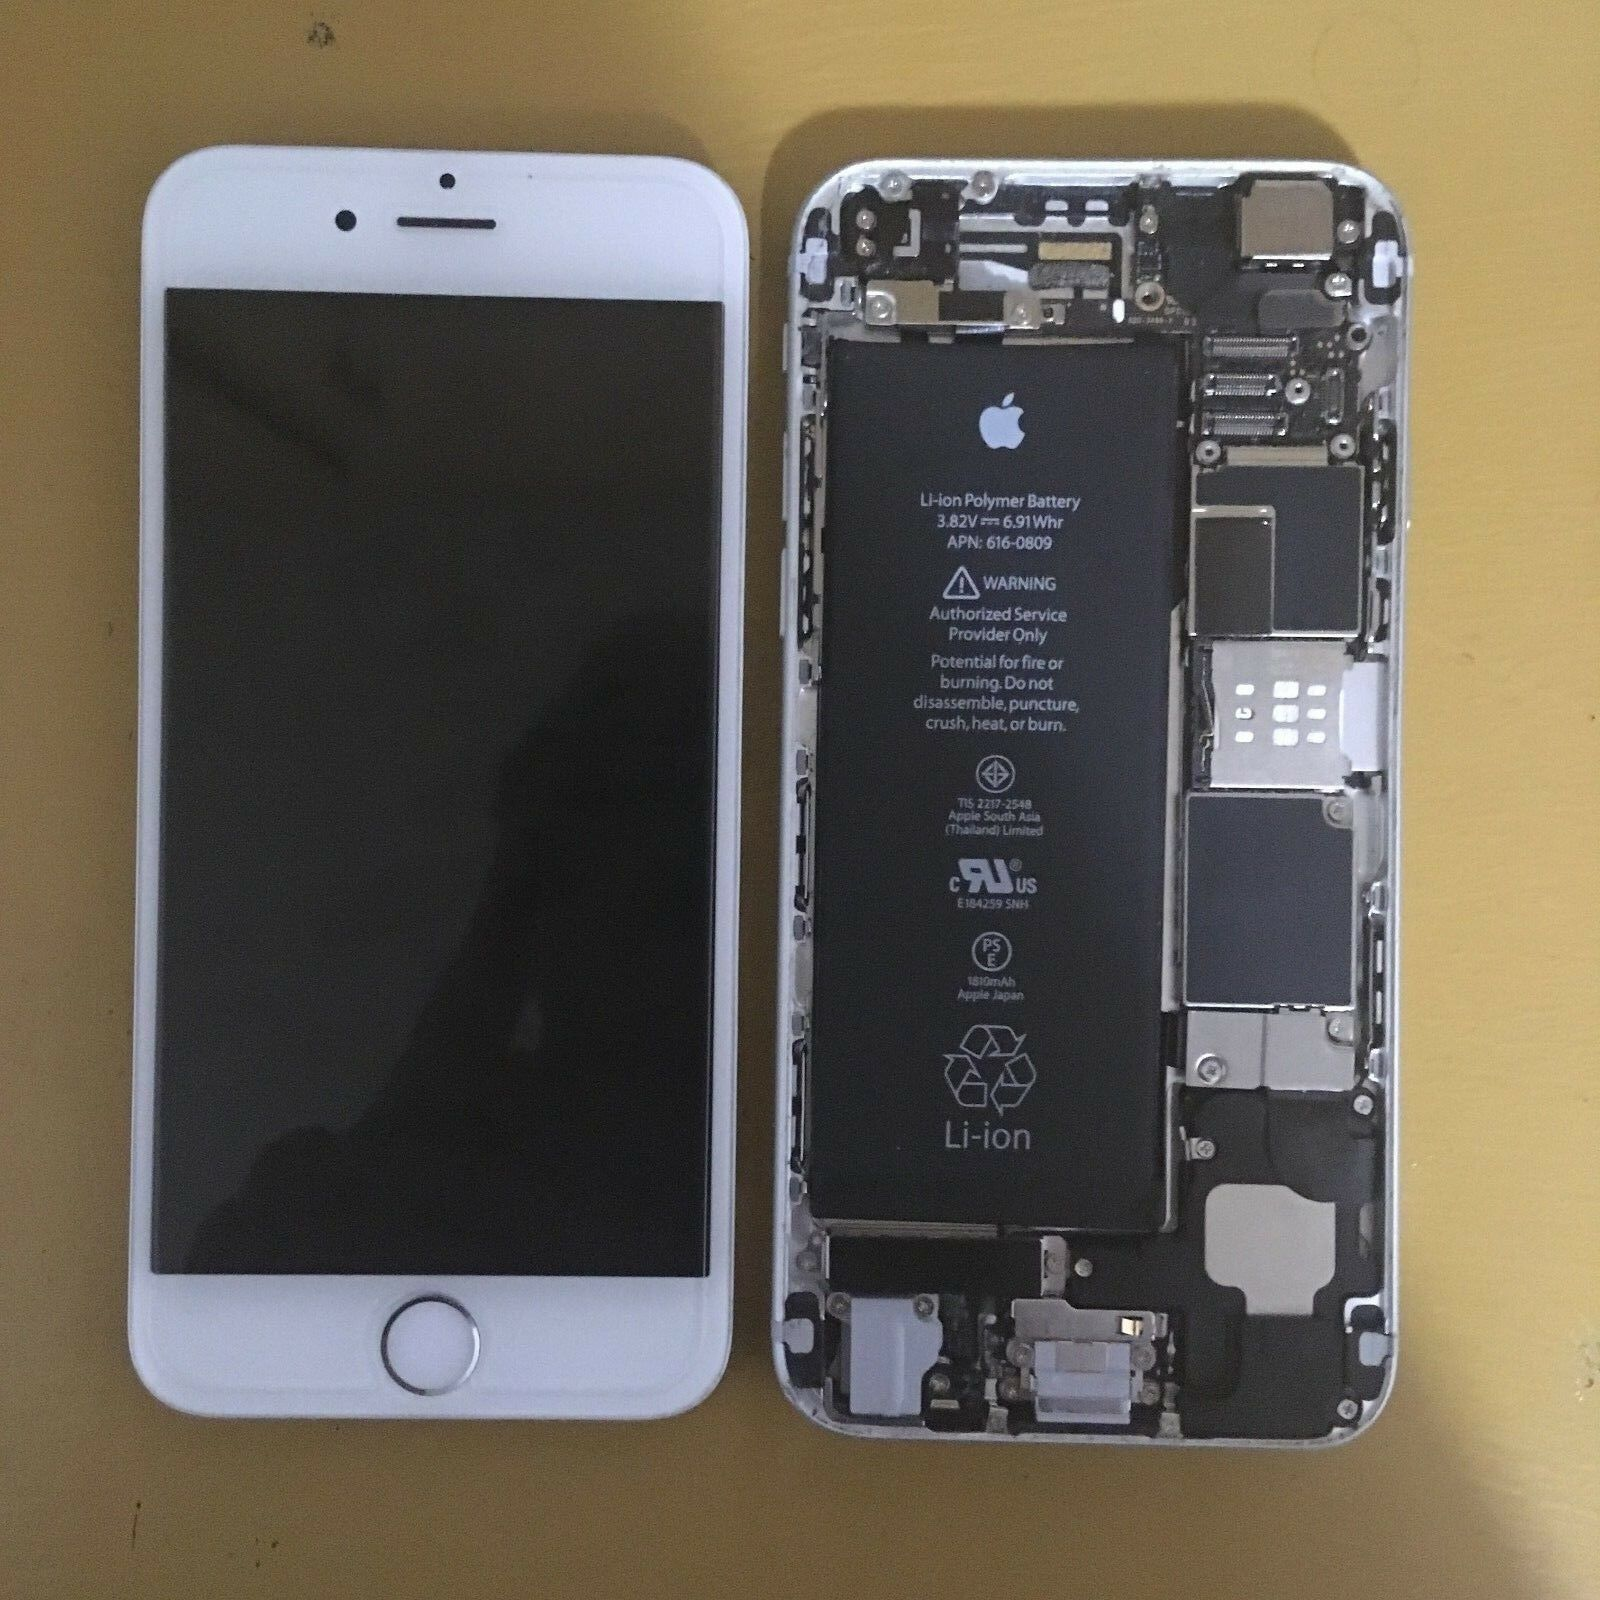 IPhone 6 6S LCD Display Screen Digitizer Repair Service OEM - $35.00